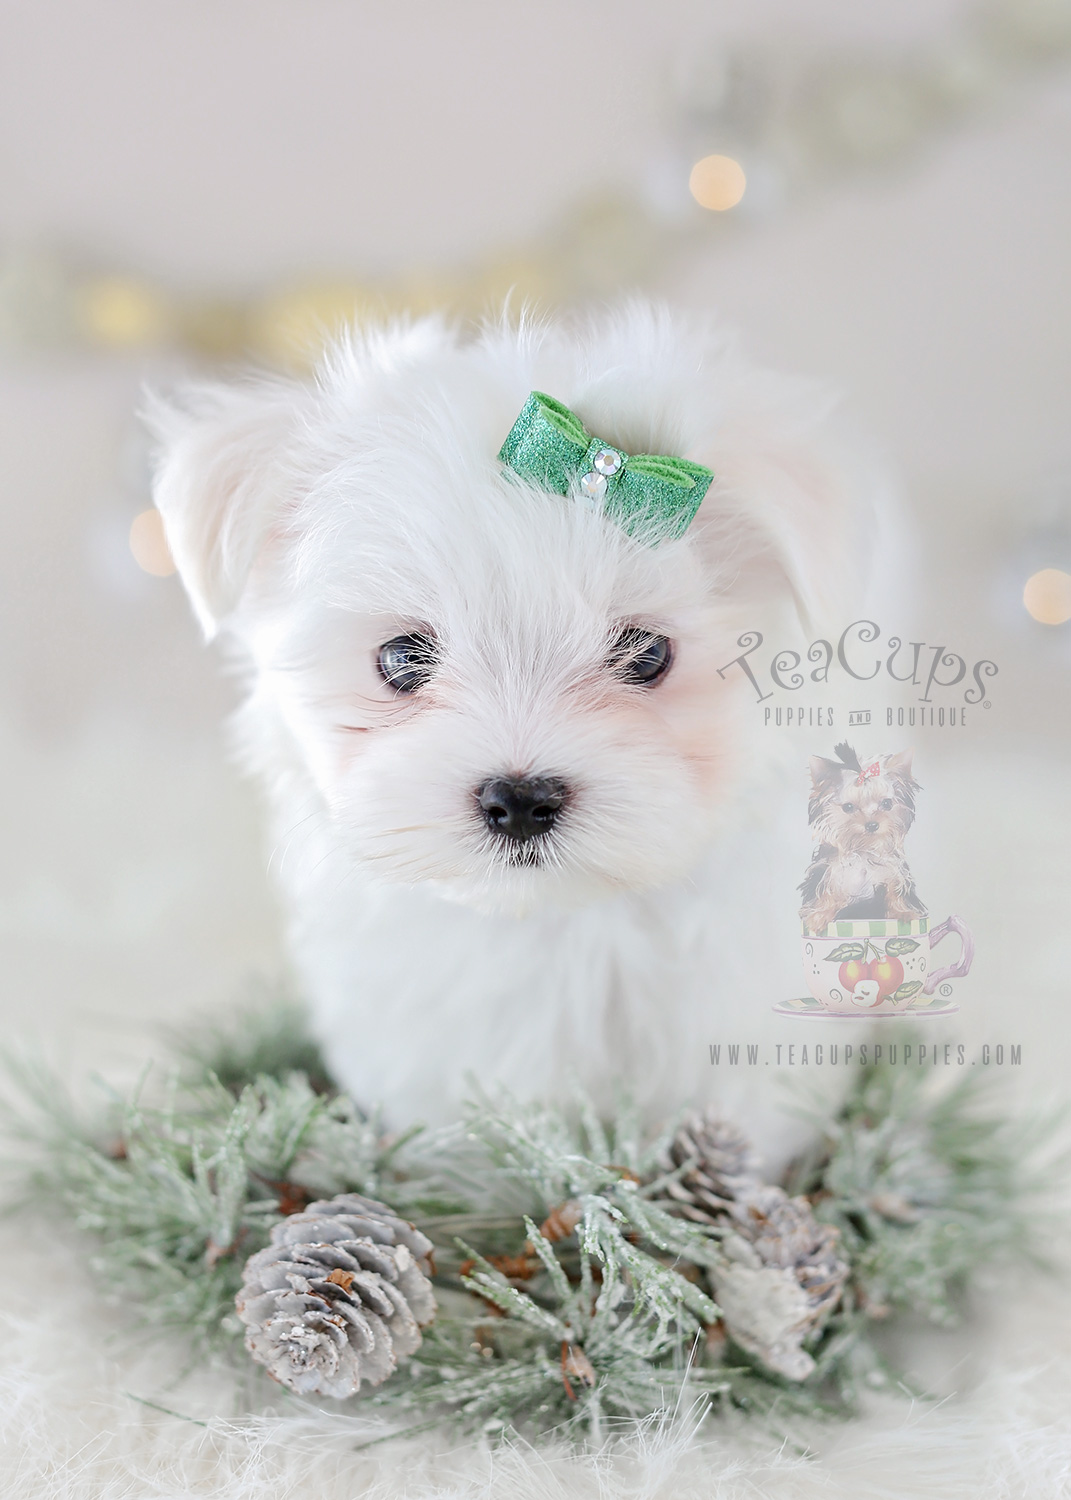 Puppy Boutique Store | TEACUP PUPPIES FOR SALE